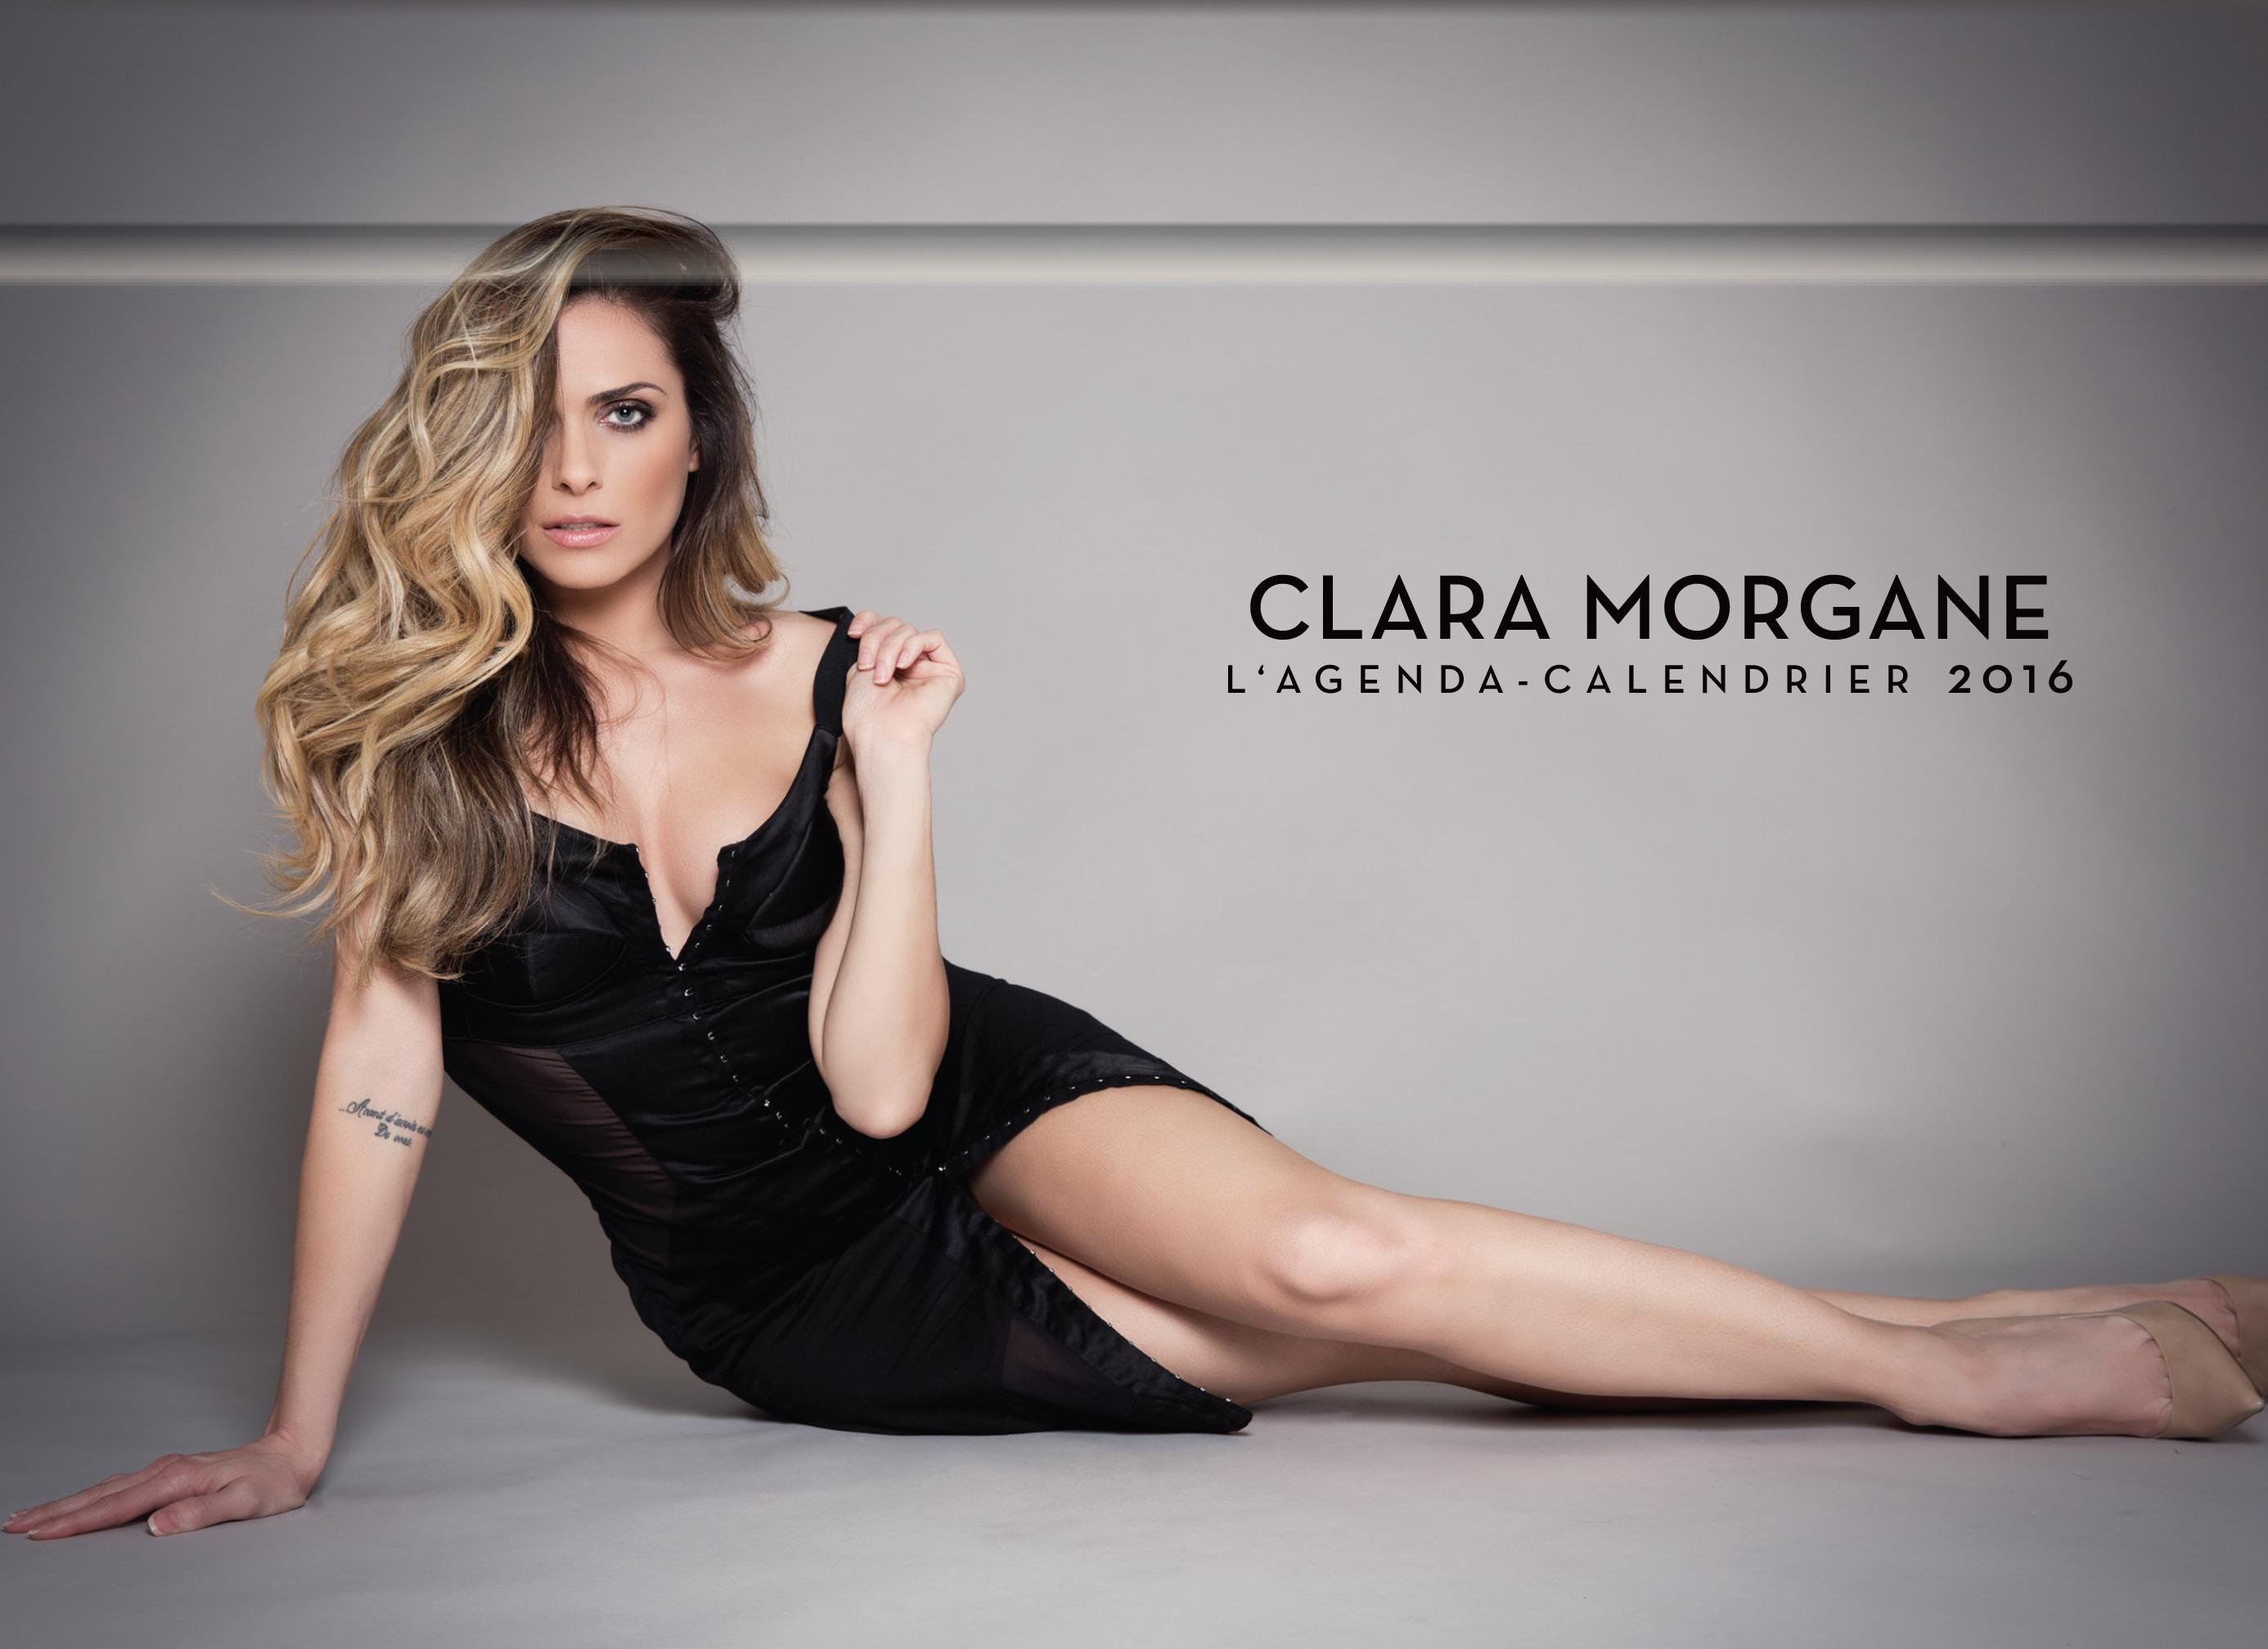 livre l 39 agenda calendrier 2016 clara morgane collectif. Black Bedroom Furniture Sets. Home Design Ideas